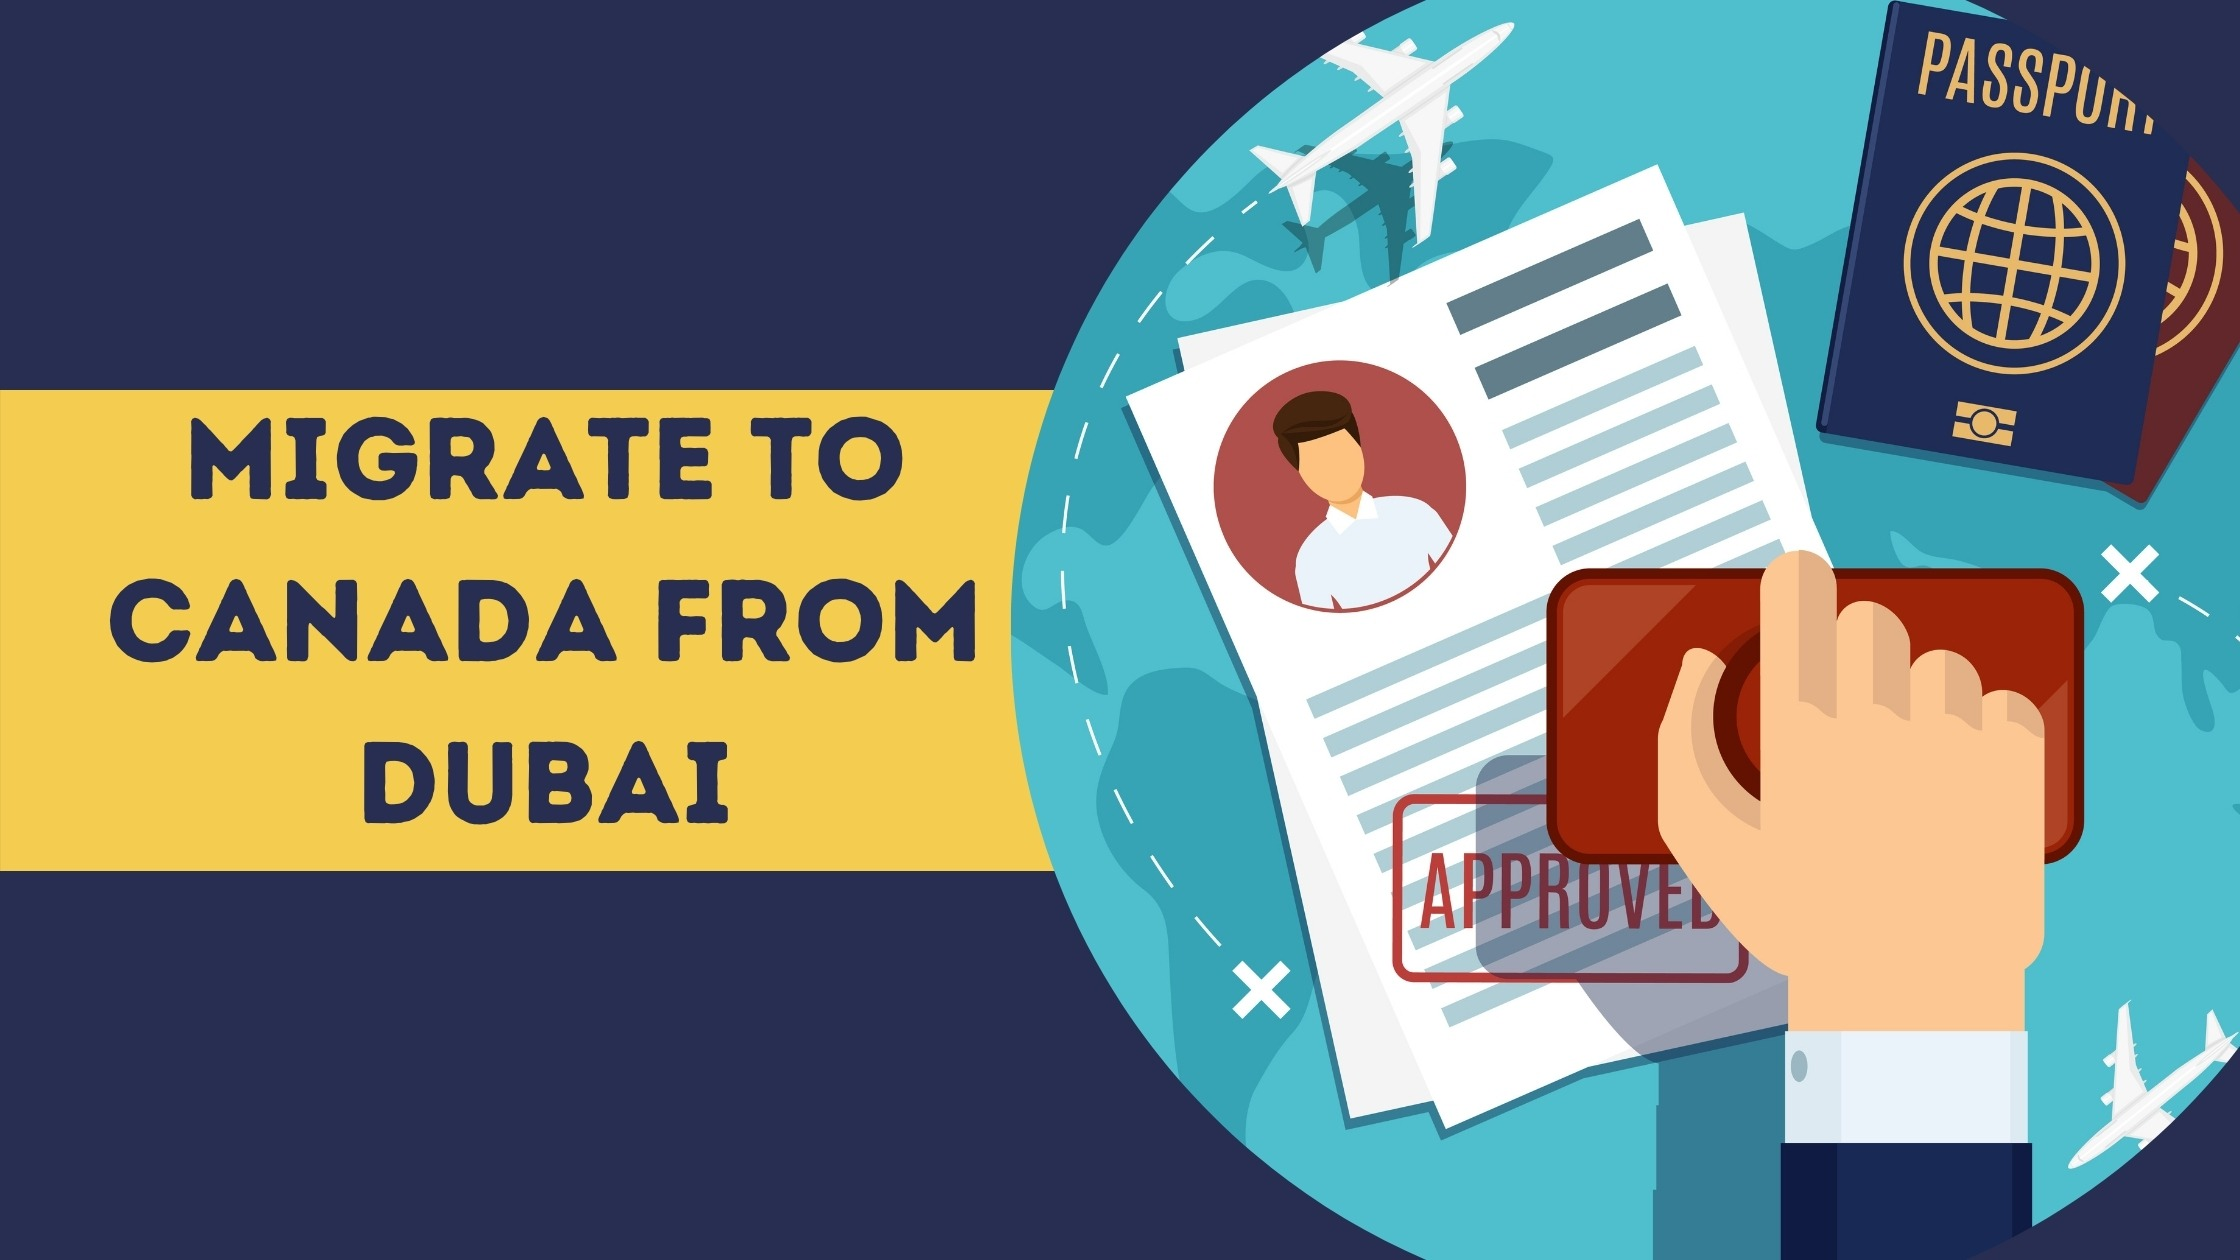 Migrate to Canada from Dubai